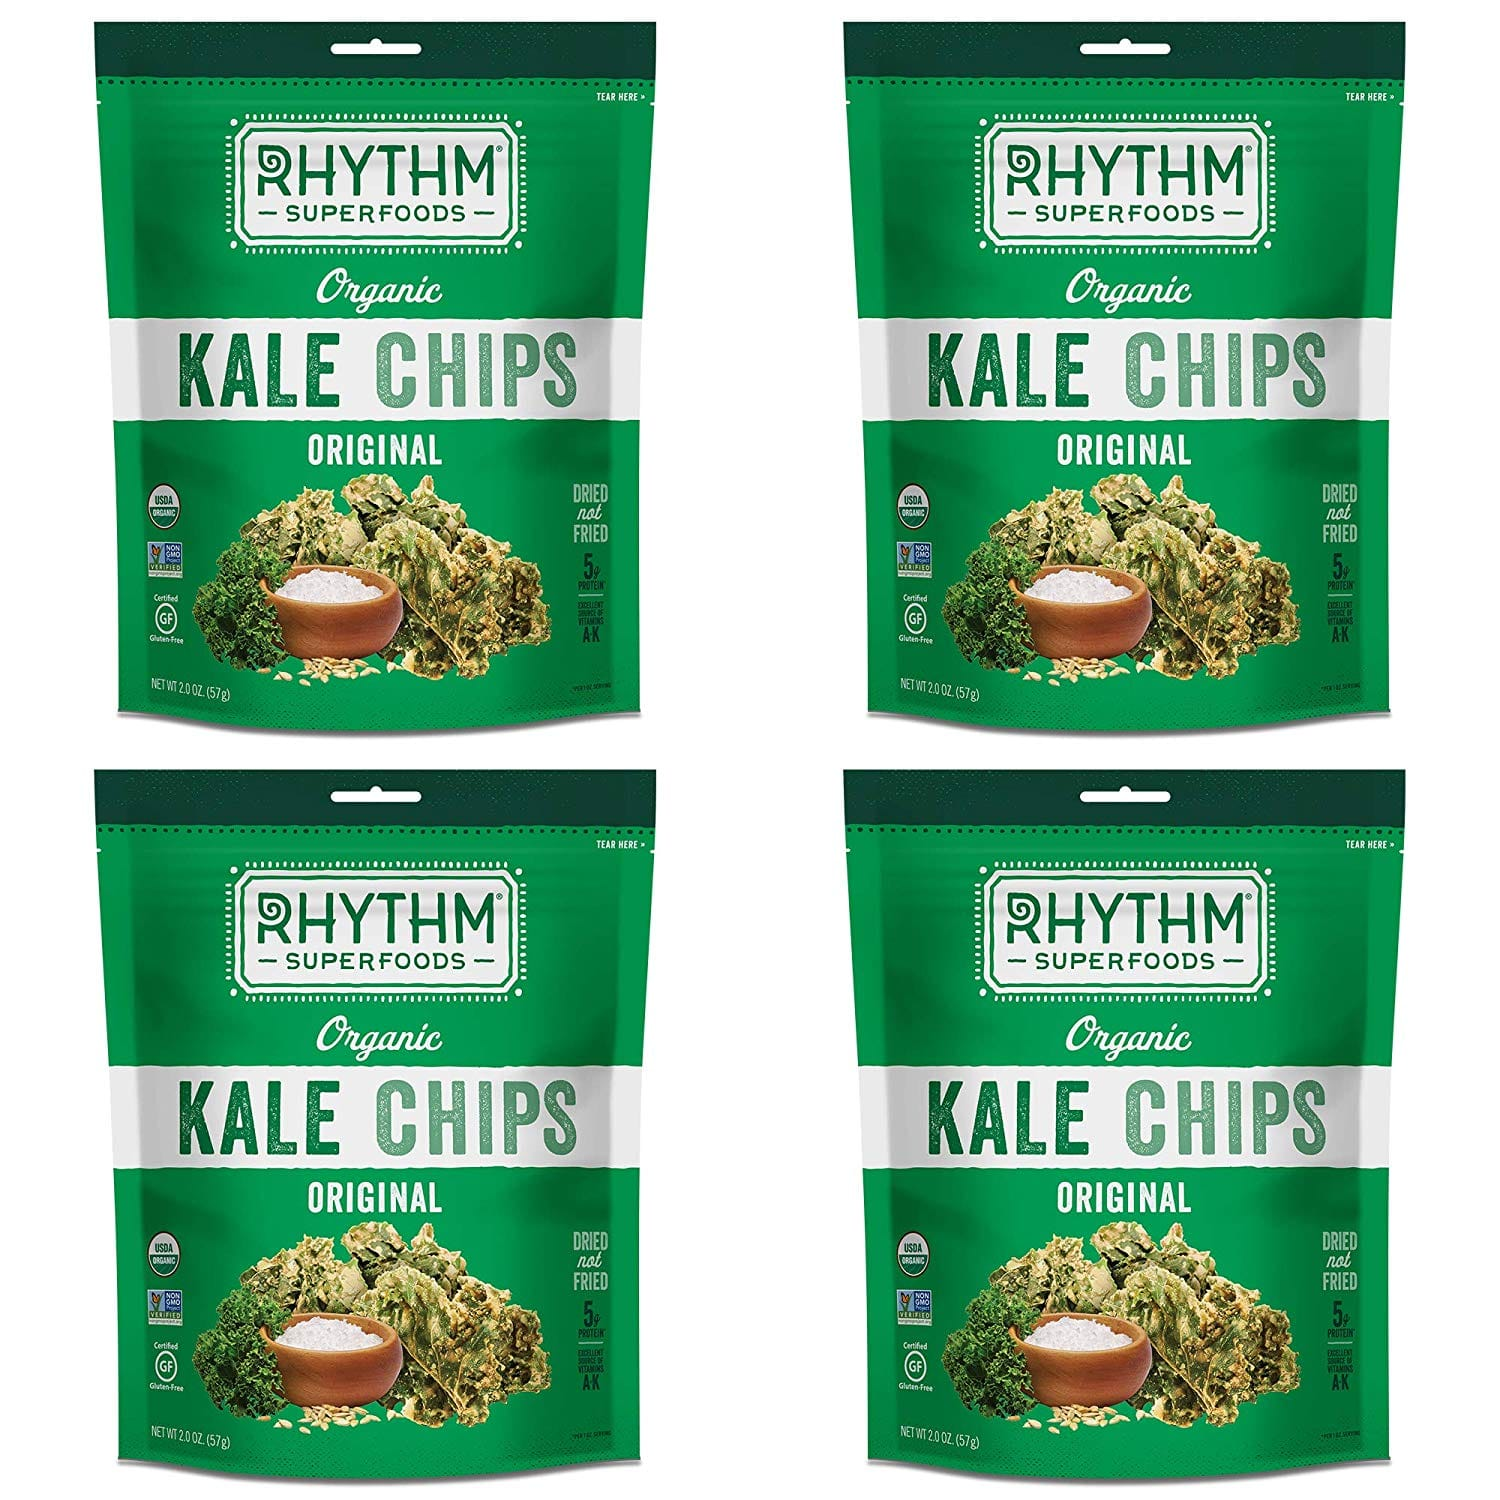 Rhythm Kale Chips $7.60 for pack of 4 S&S